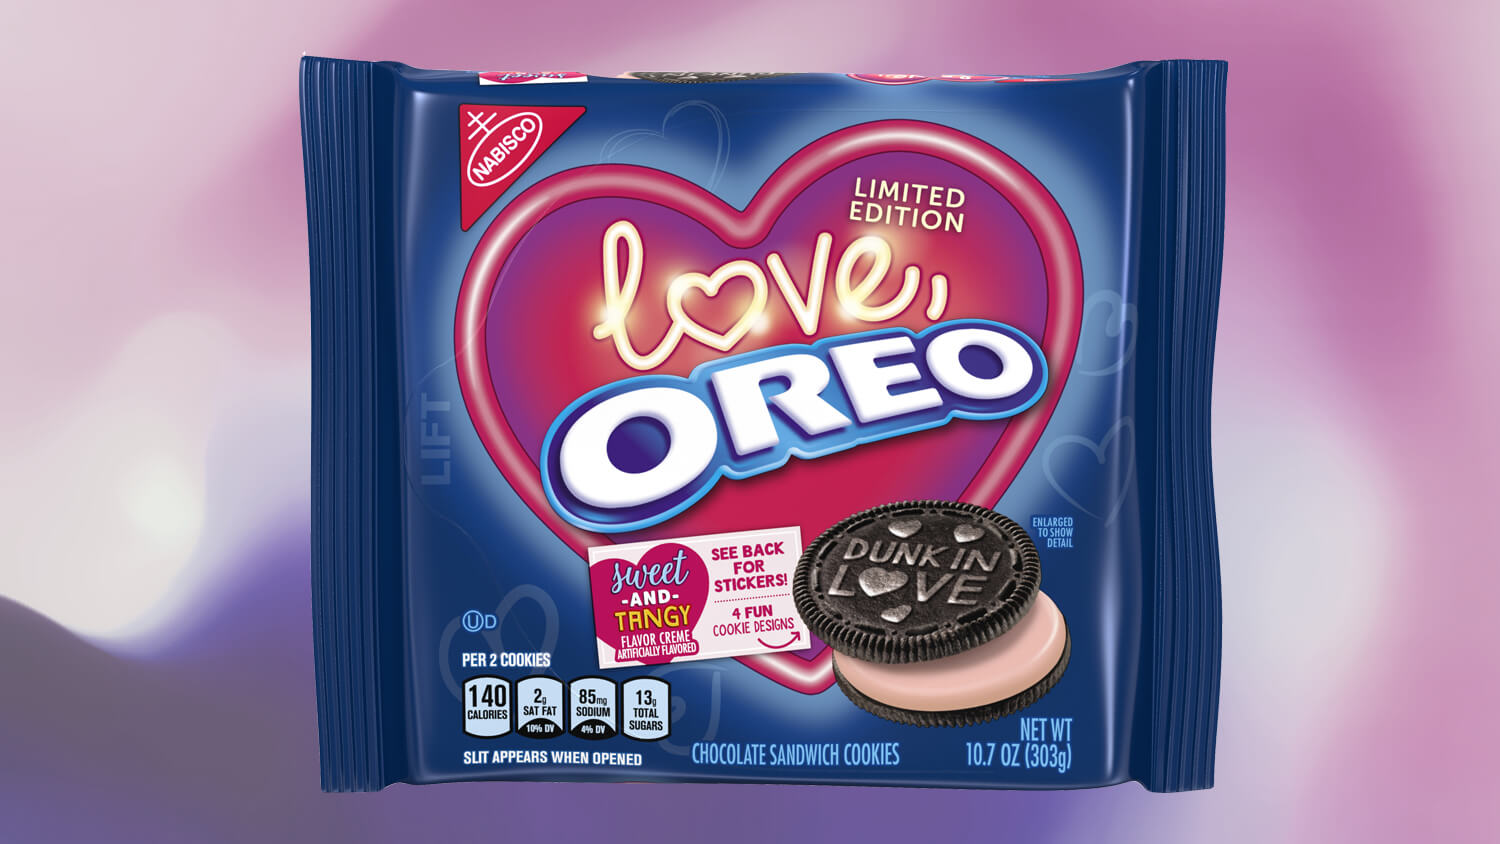 Vegan Pink 'Love, Oreo' Cookies Launch Just In Time for Valentine's Day